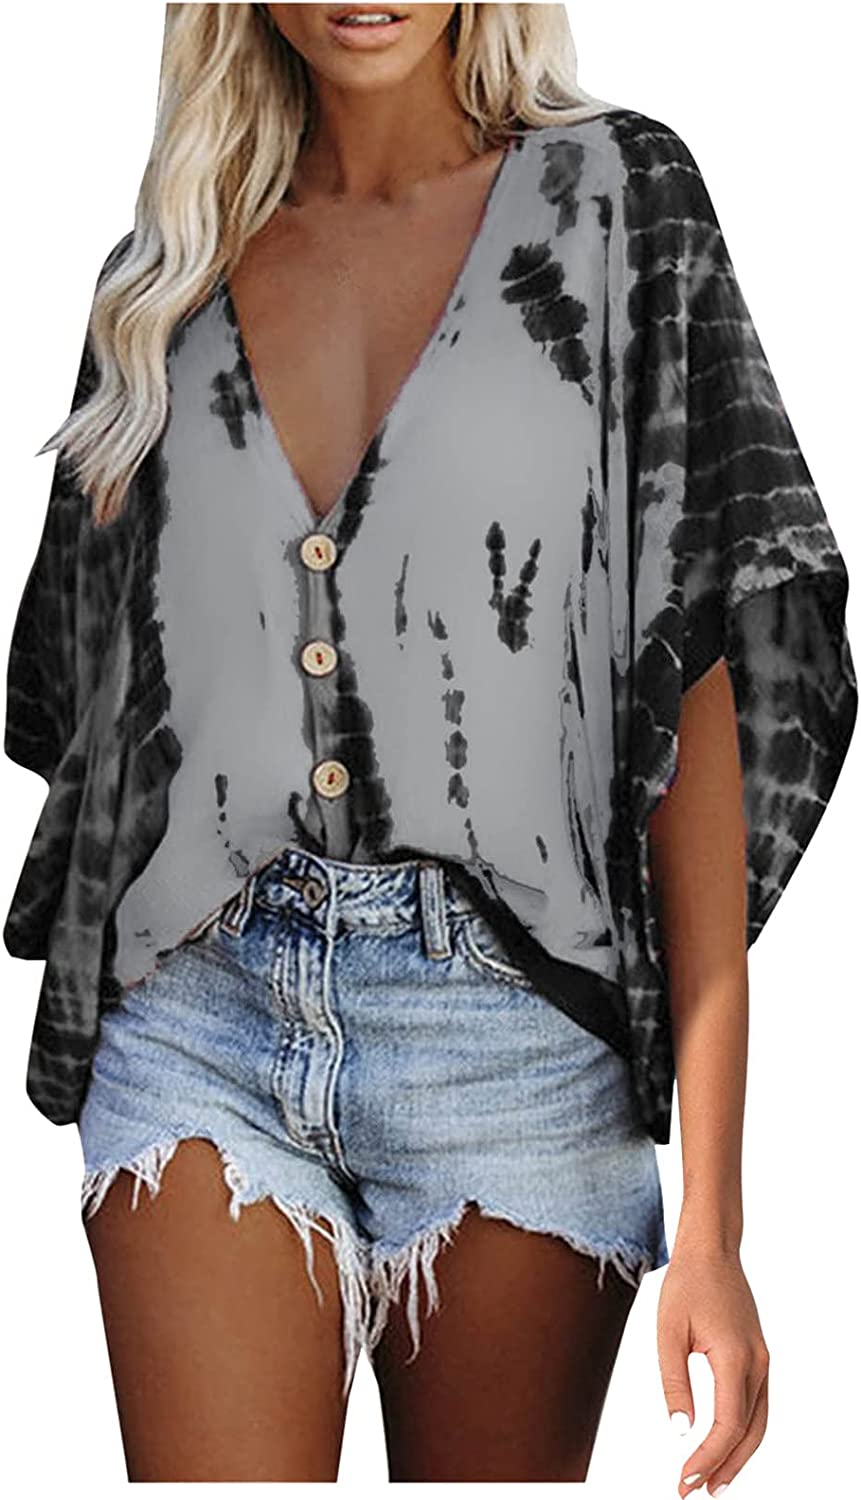 ManxiVoo Women's Top Tie-Dye Floral Printed V Neck Blouse Bell Sleeve Button Down Top Shirt Blouse